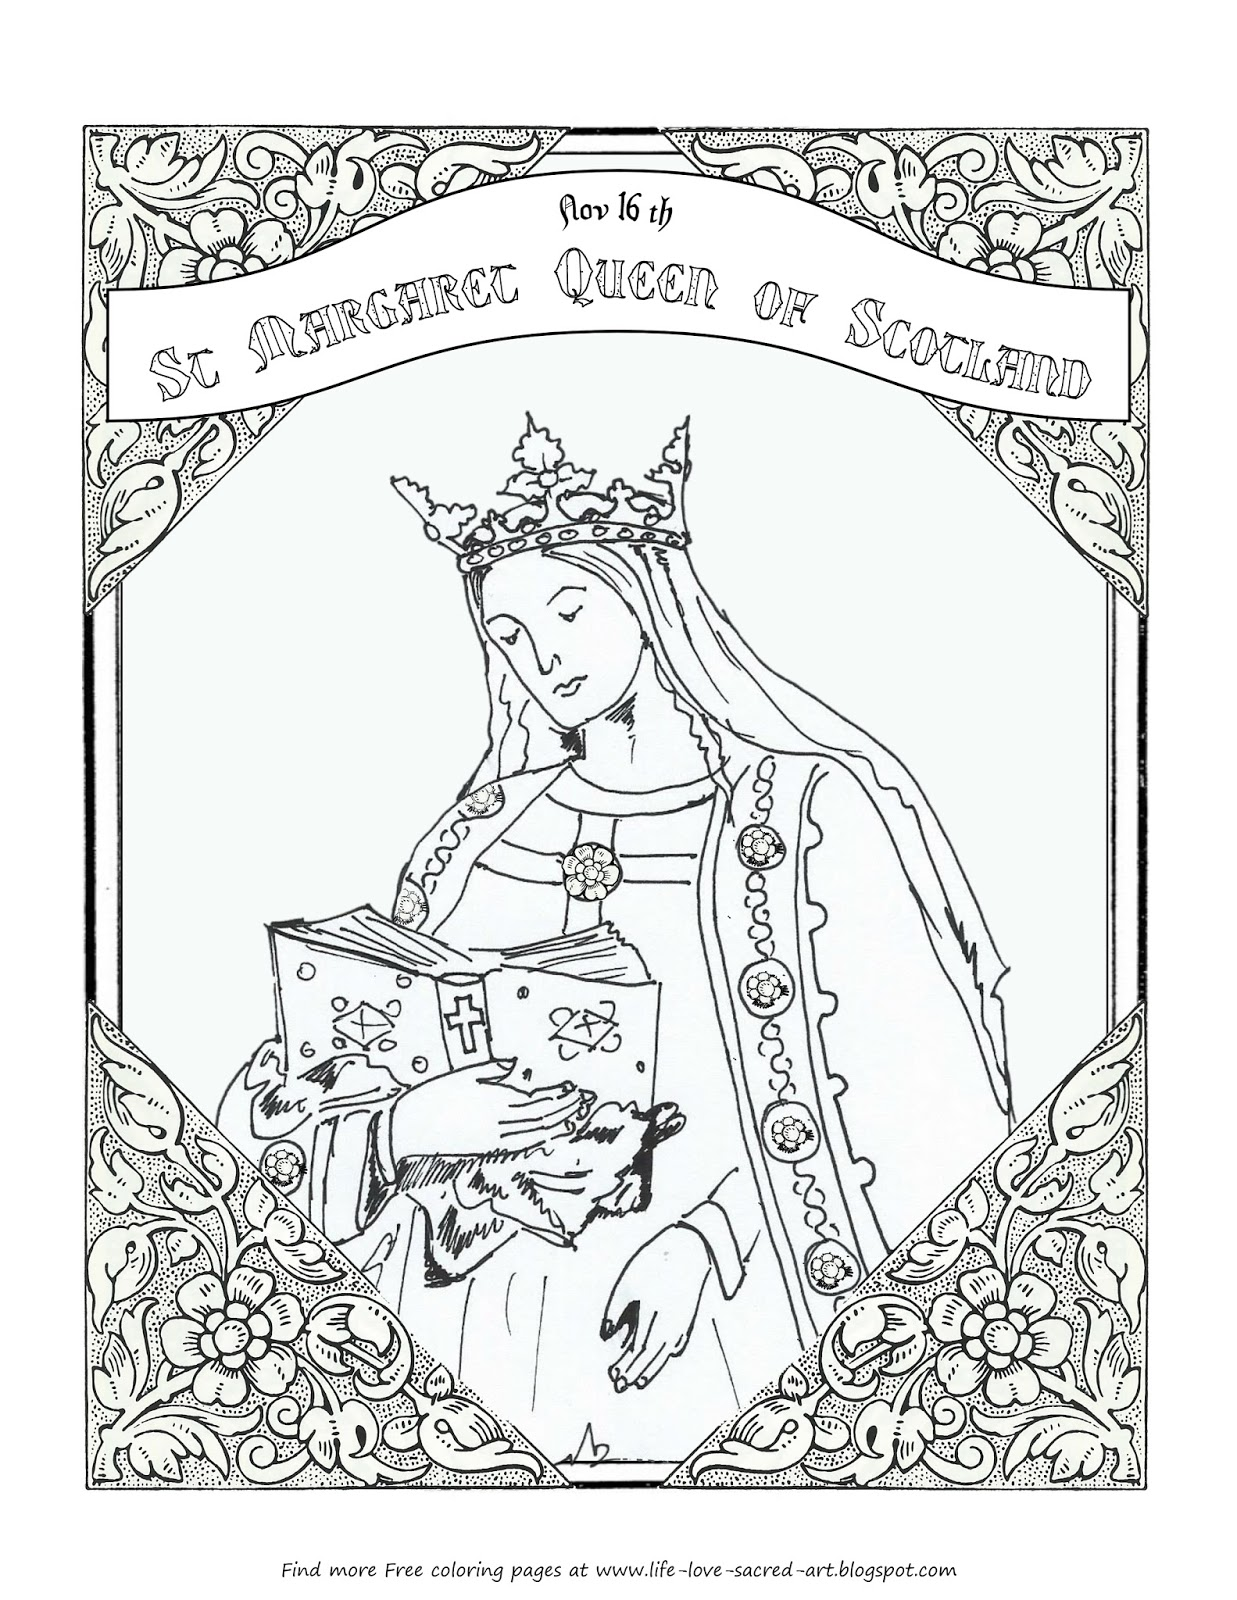 1237x1600 Life, Love, Sacred Art Free Coloring Page For St Margaret